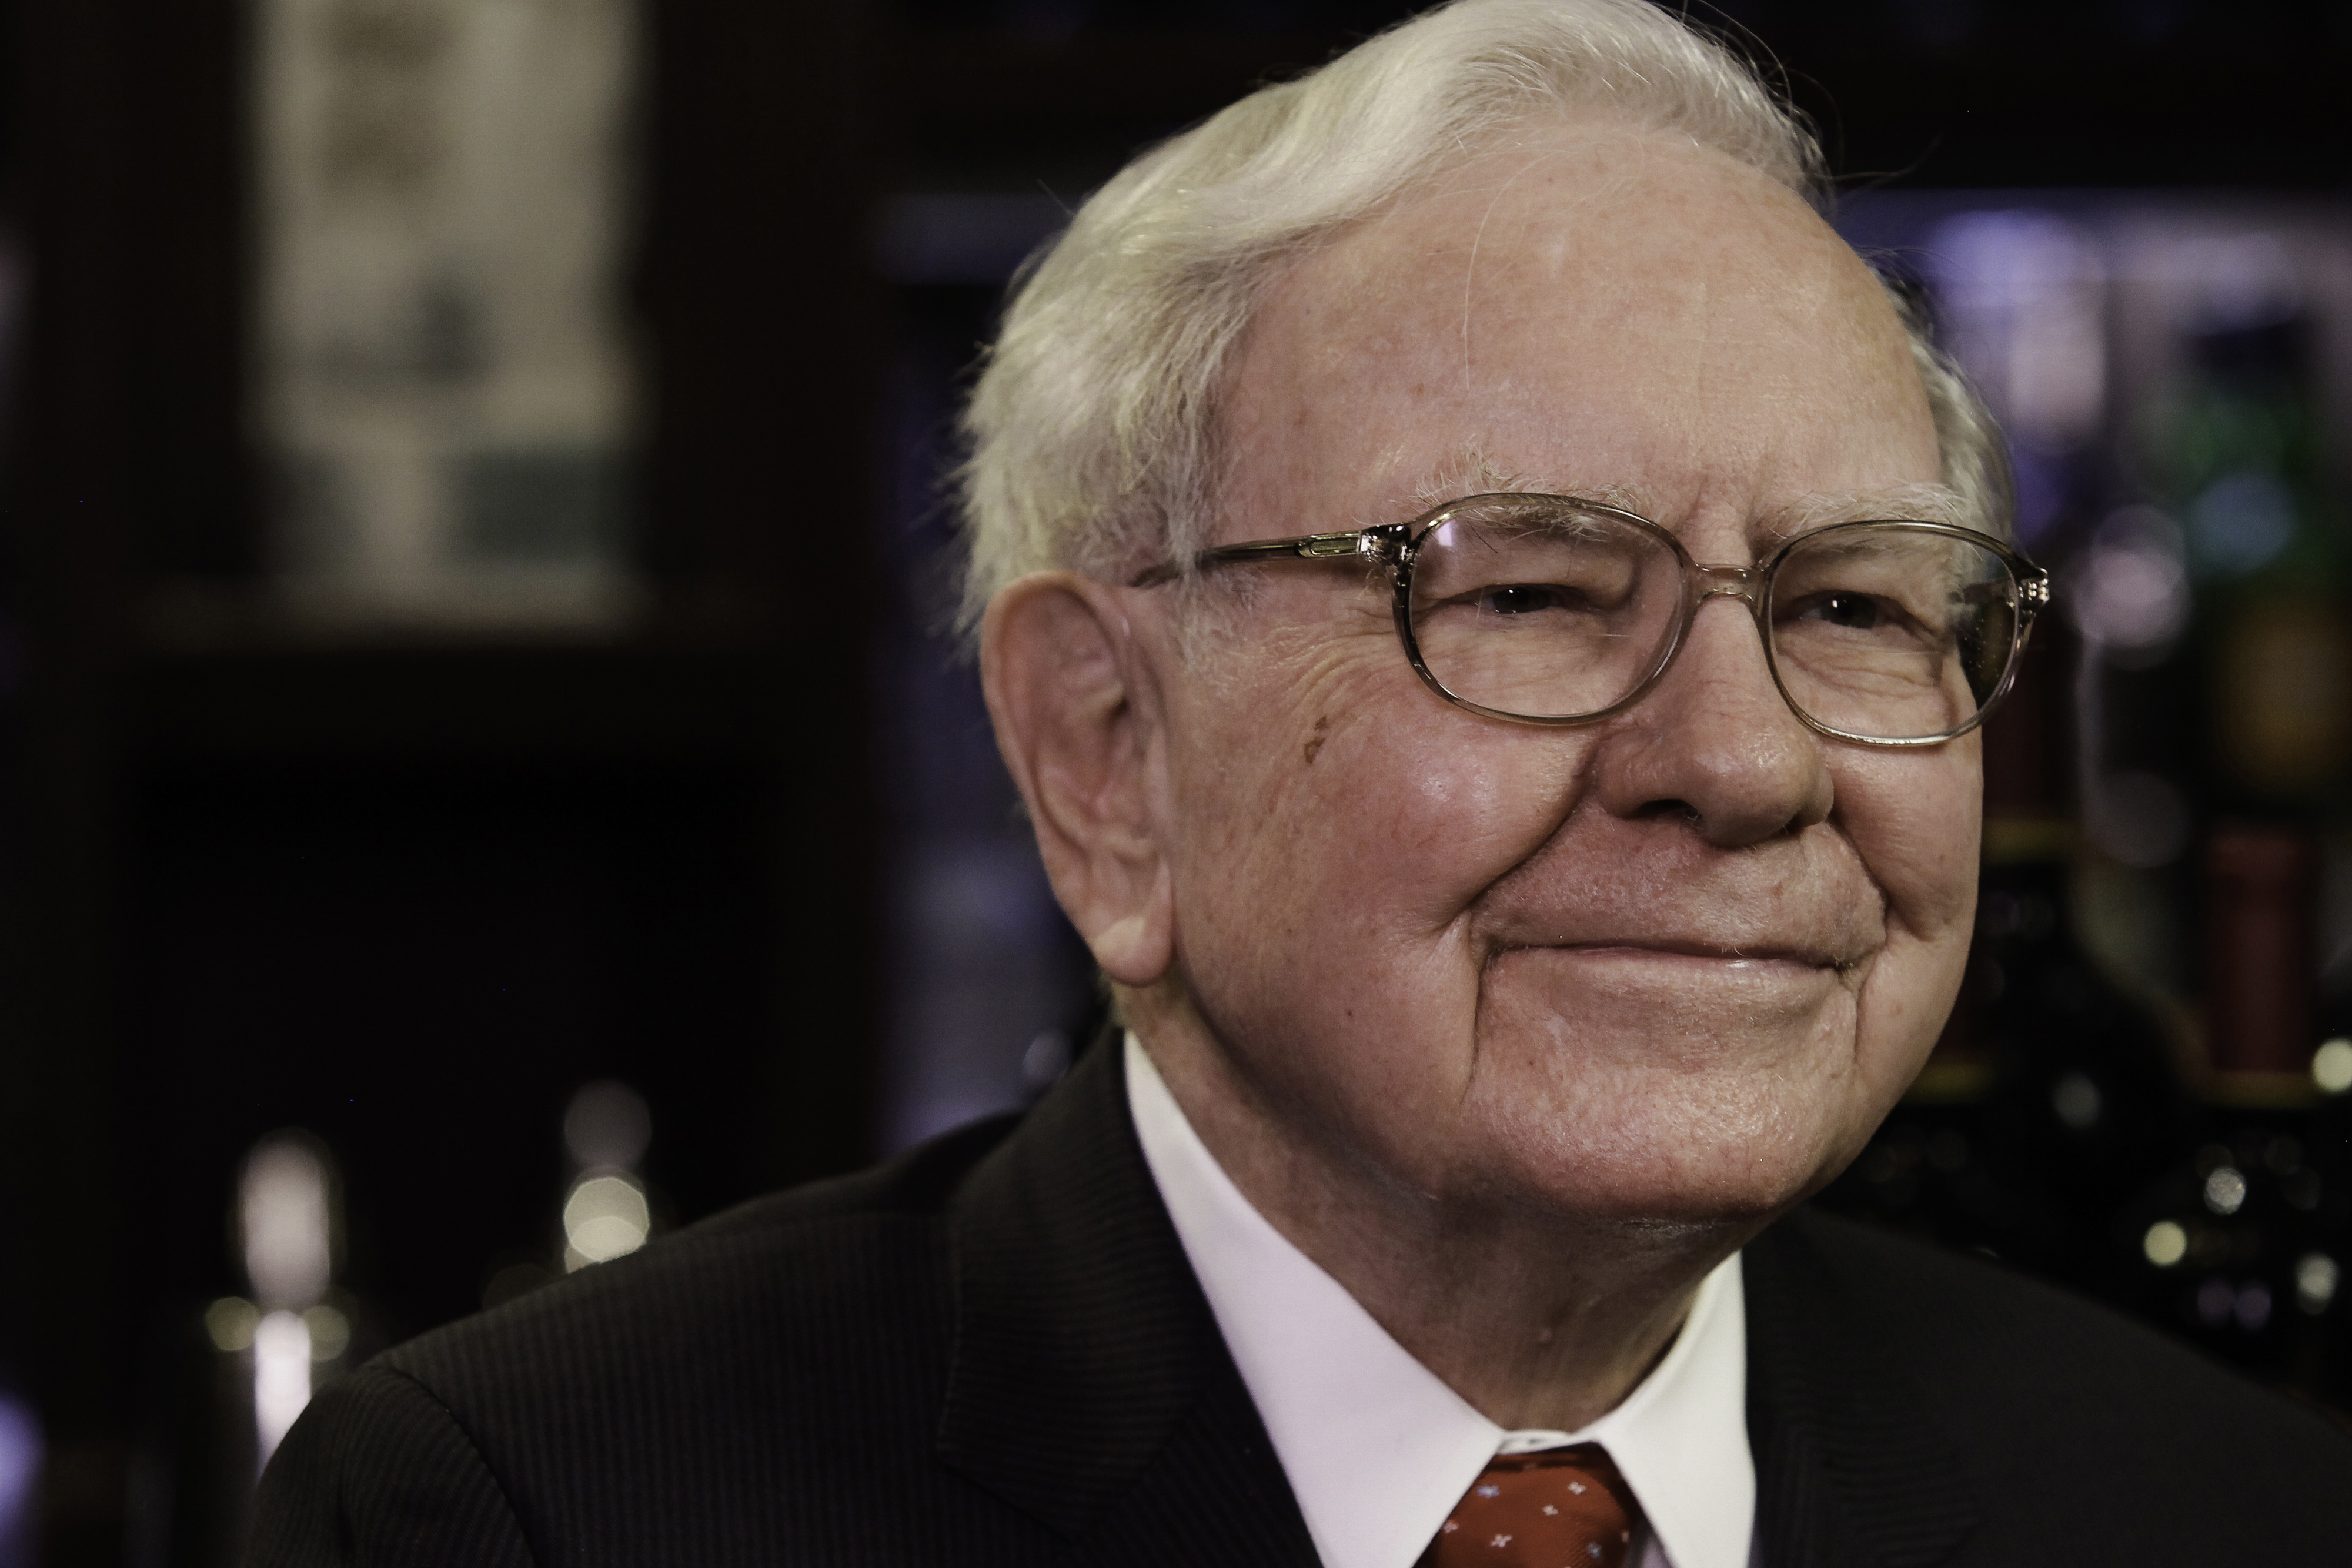 Annual Charity Lunch With Warren Buffett At Smith & Wollensky